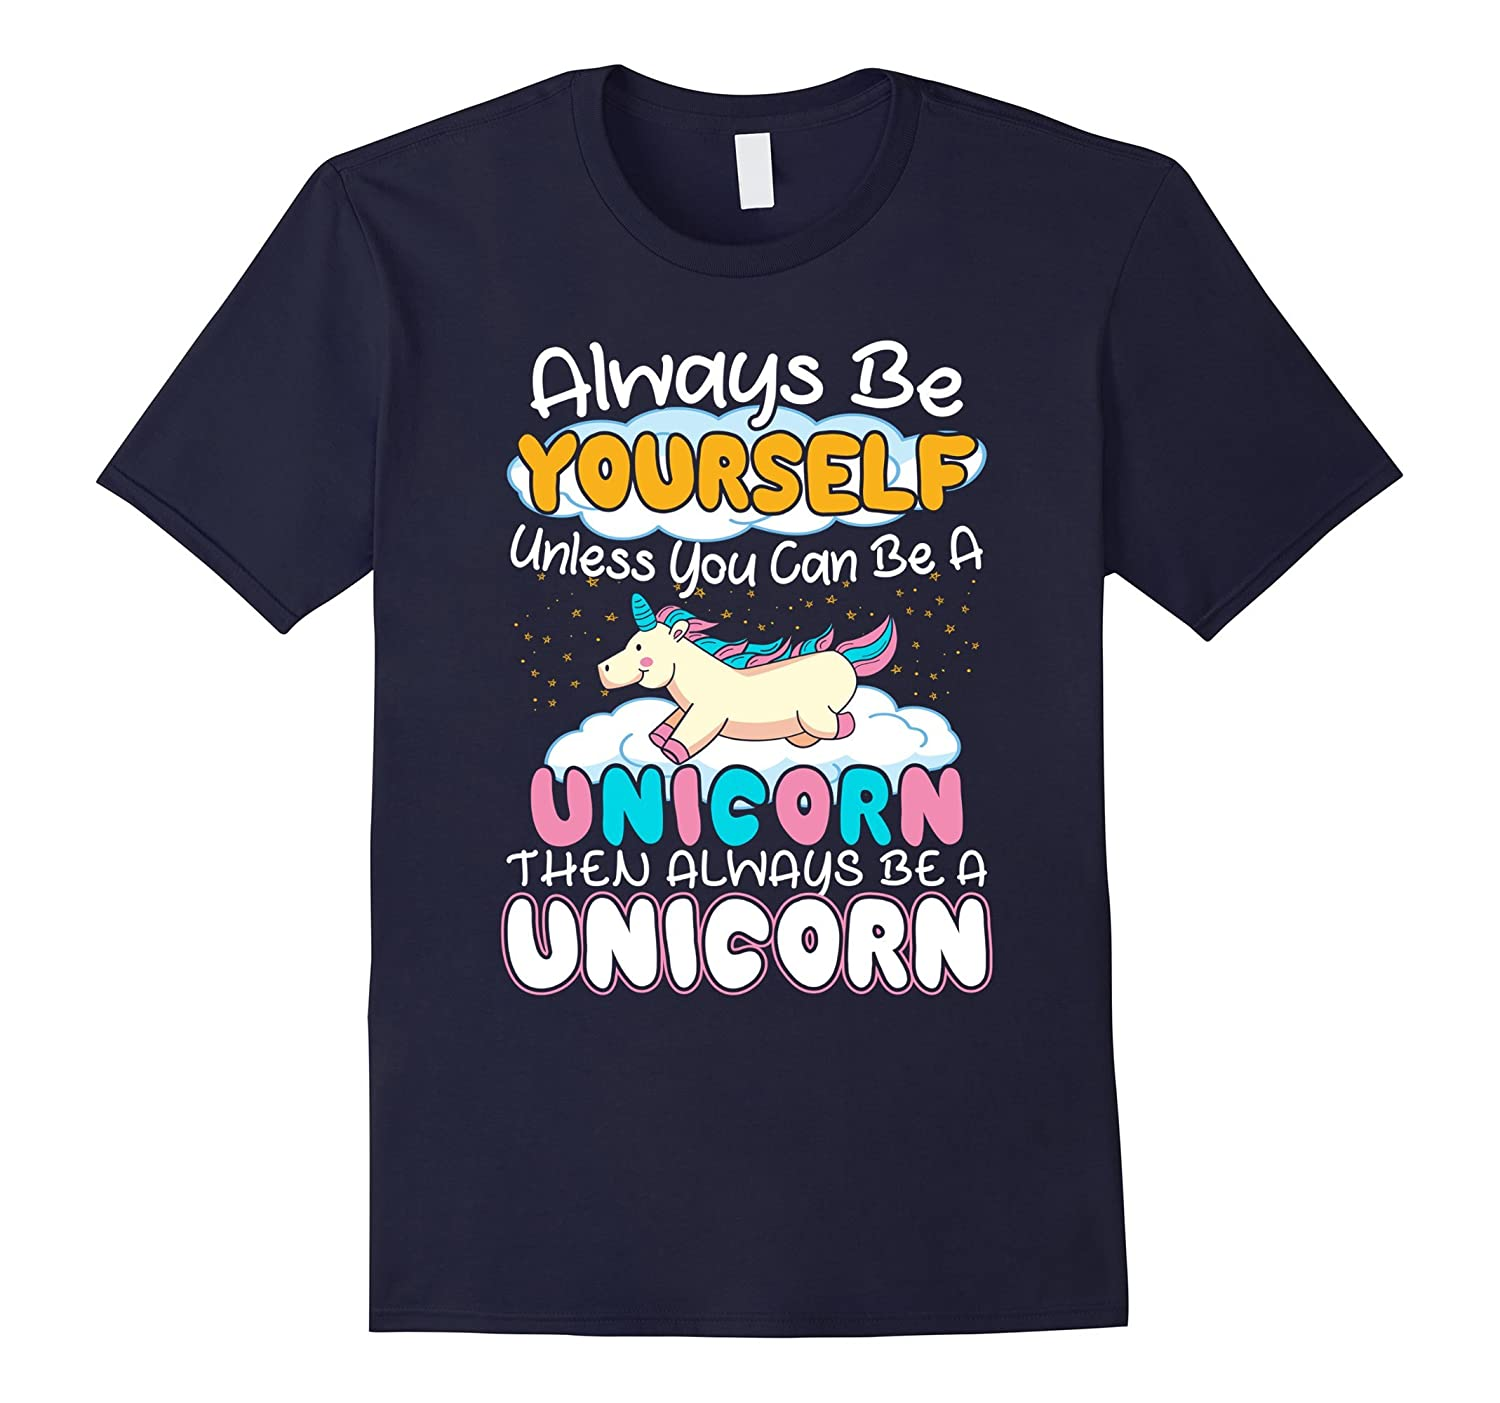 Funny Always Be Yourself Unless You Can Be a Unicorn T-shirt